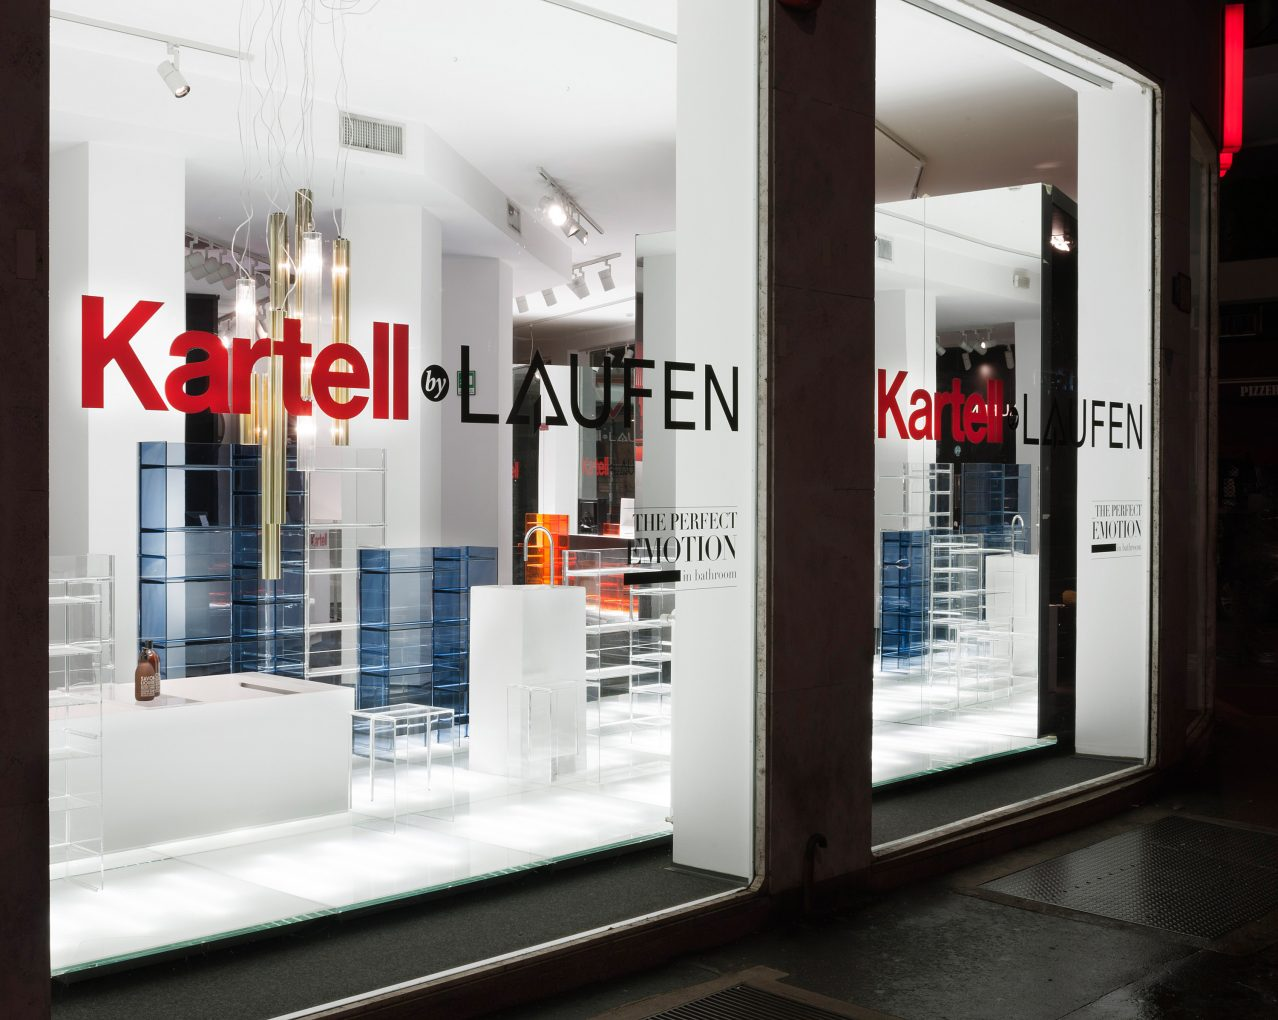 kartell event at Salone Del Mobile 2019 salone del mobile 2019 SALONE DEL MOBILE 2019: THE EVENTS YOU SHOULD ATTEND ON APRIL 9TH kartell